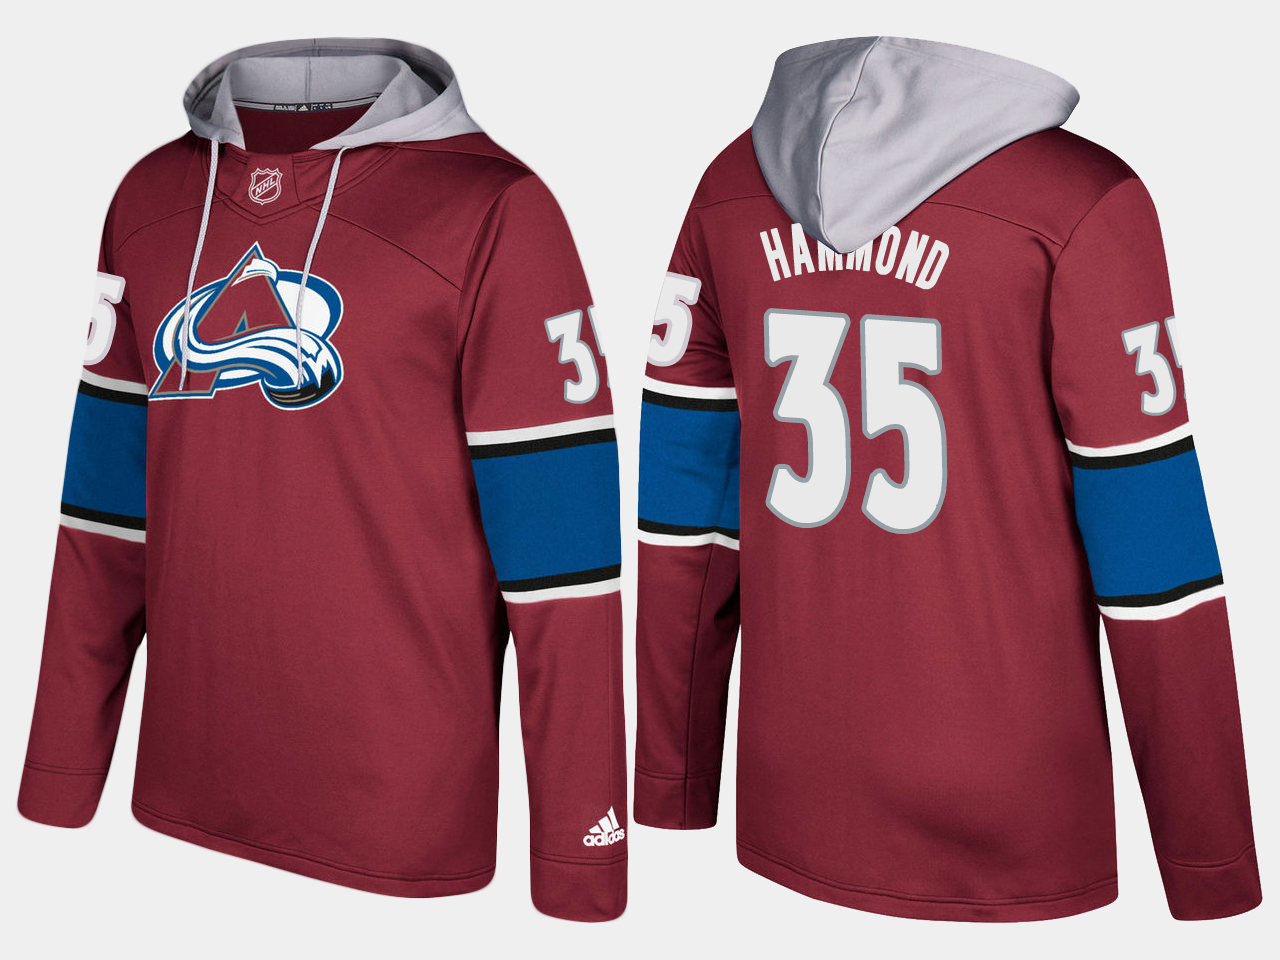 d50c2fbb0b8 Men NHL Colorado avalanche 35 andrew hammond burgundy hoodie